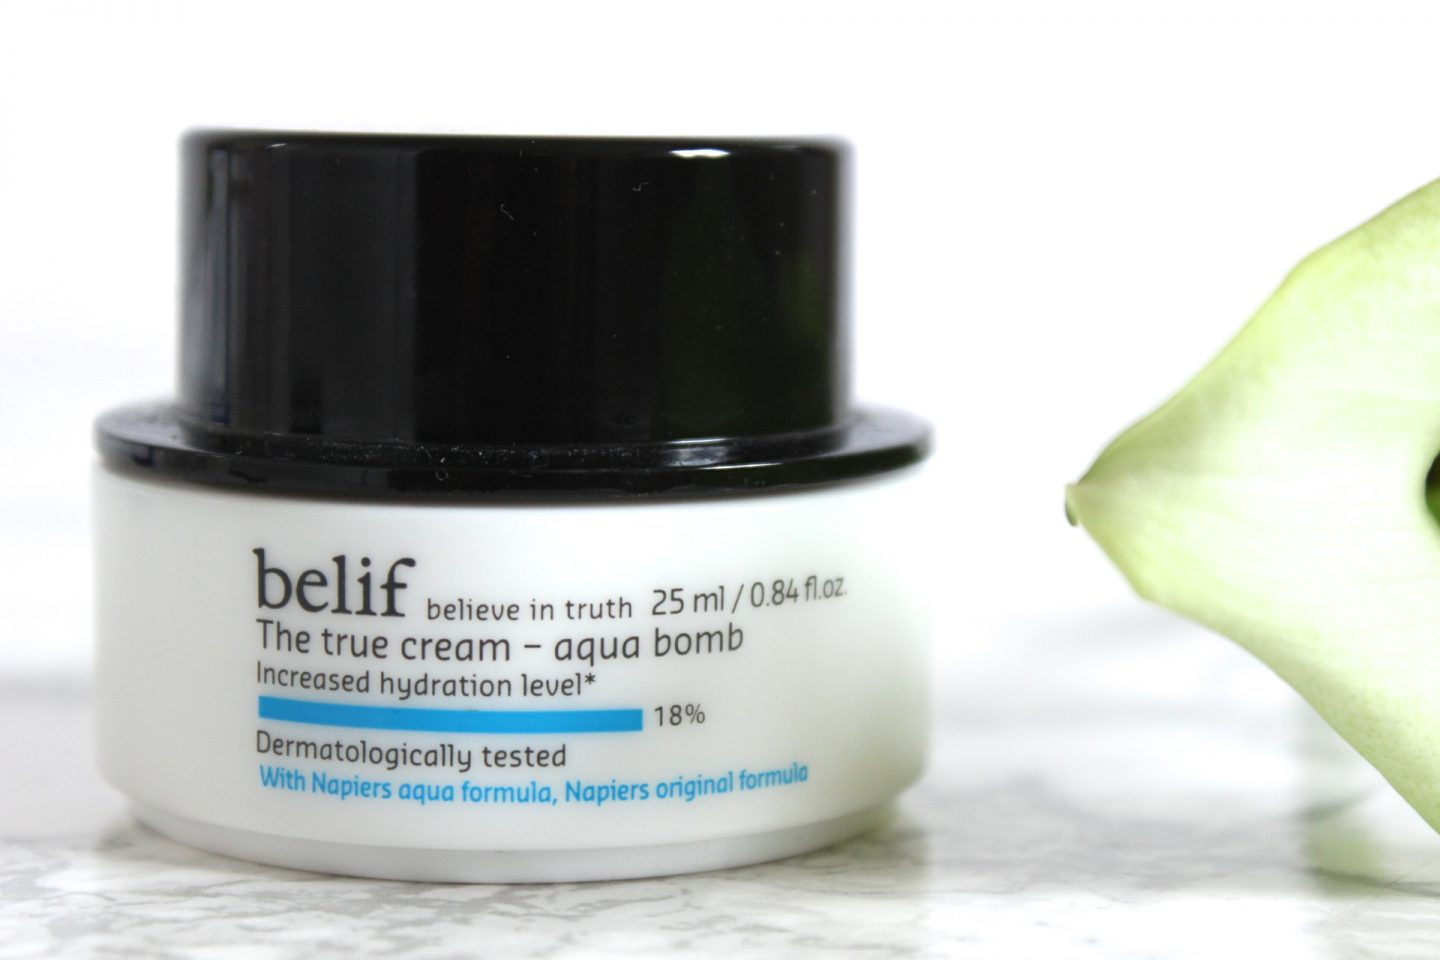 Belif The Truth Cream - Aqua Bomb